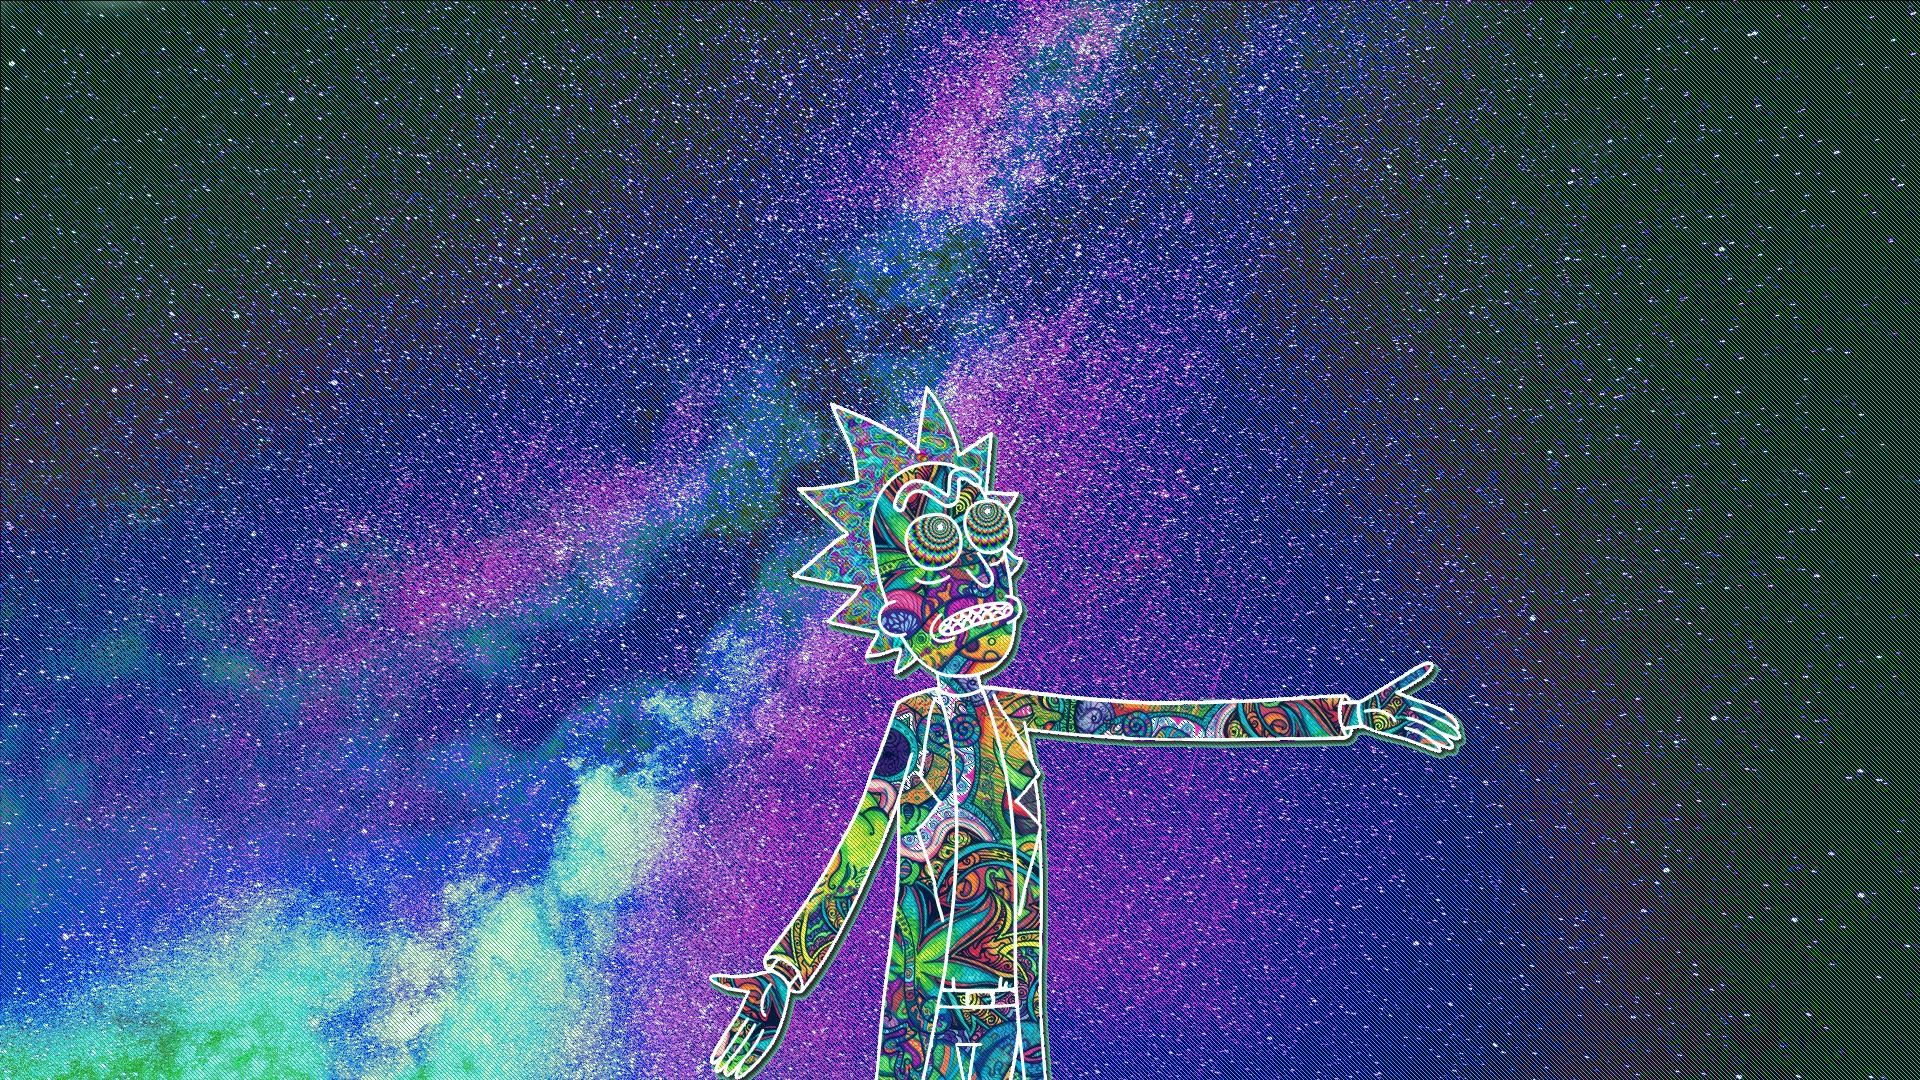 33 Rick And Morty Wallpapers Download Free Cool High